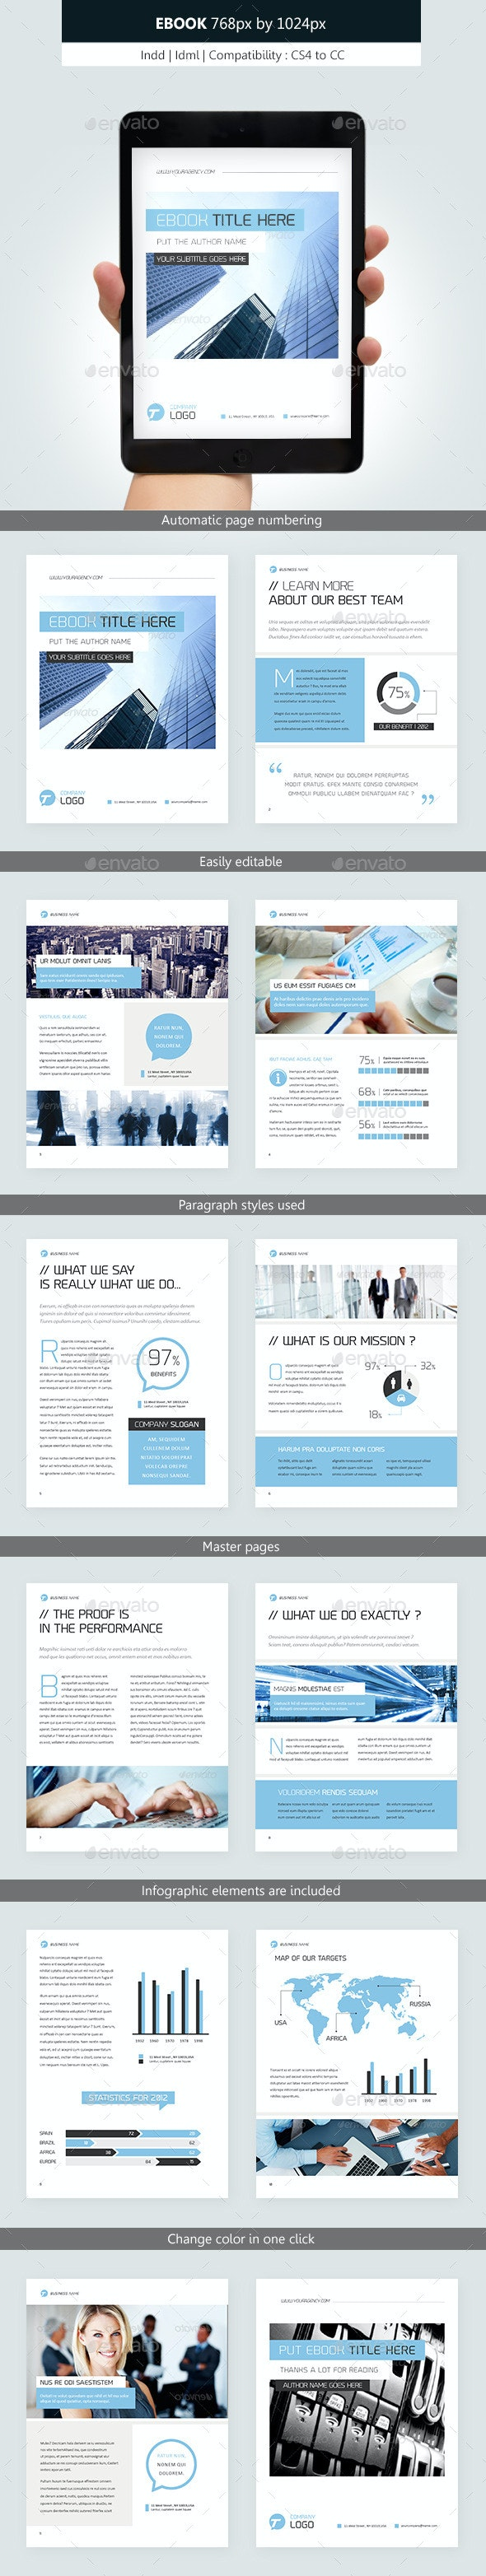 Corporate Ebook Template Design vol.2 - Digital Books ePublishing